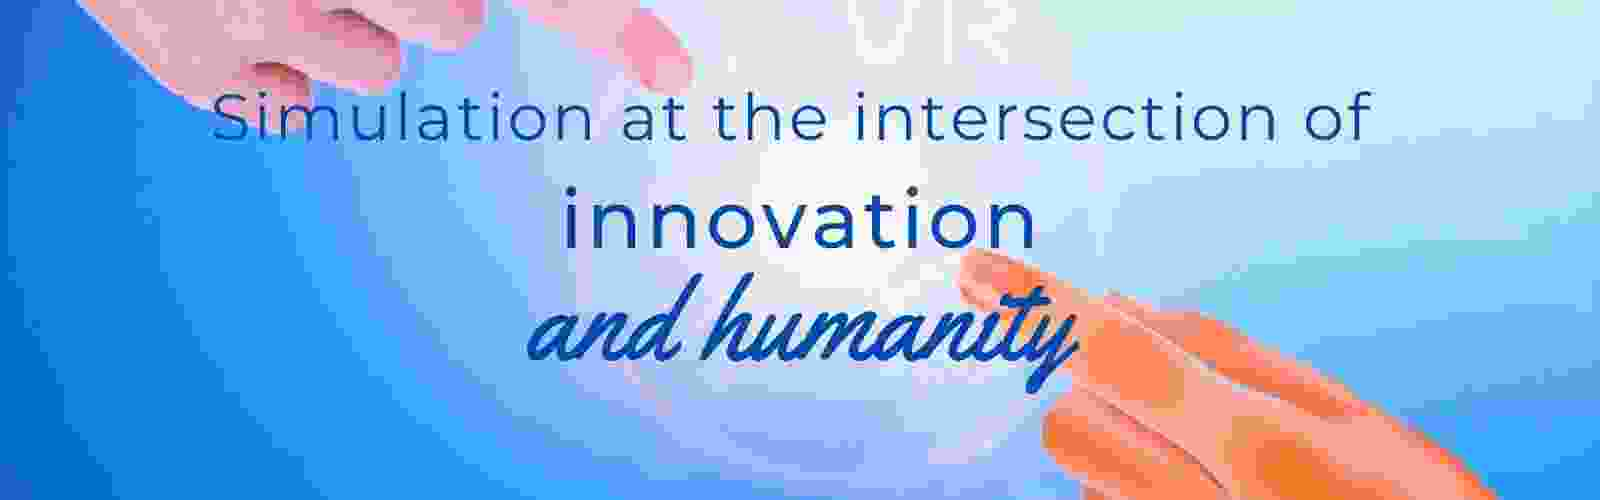 Welcome to the interprofessional Center for Experiential Learning and Simulation (iCELS) - the intersection of innovation and humanity